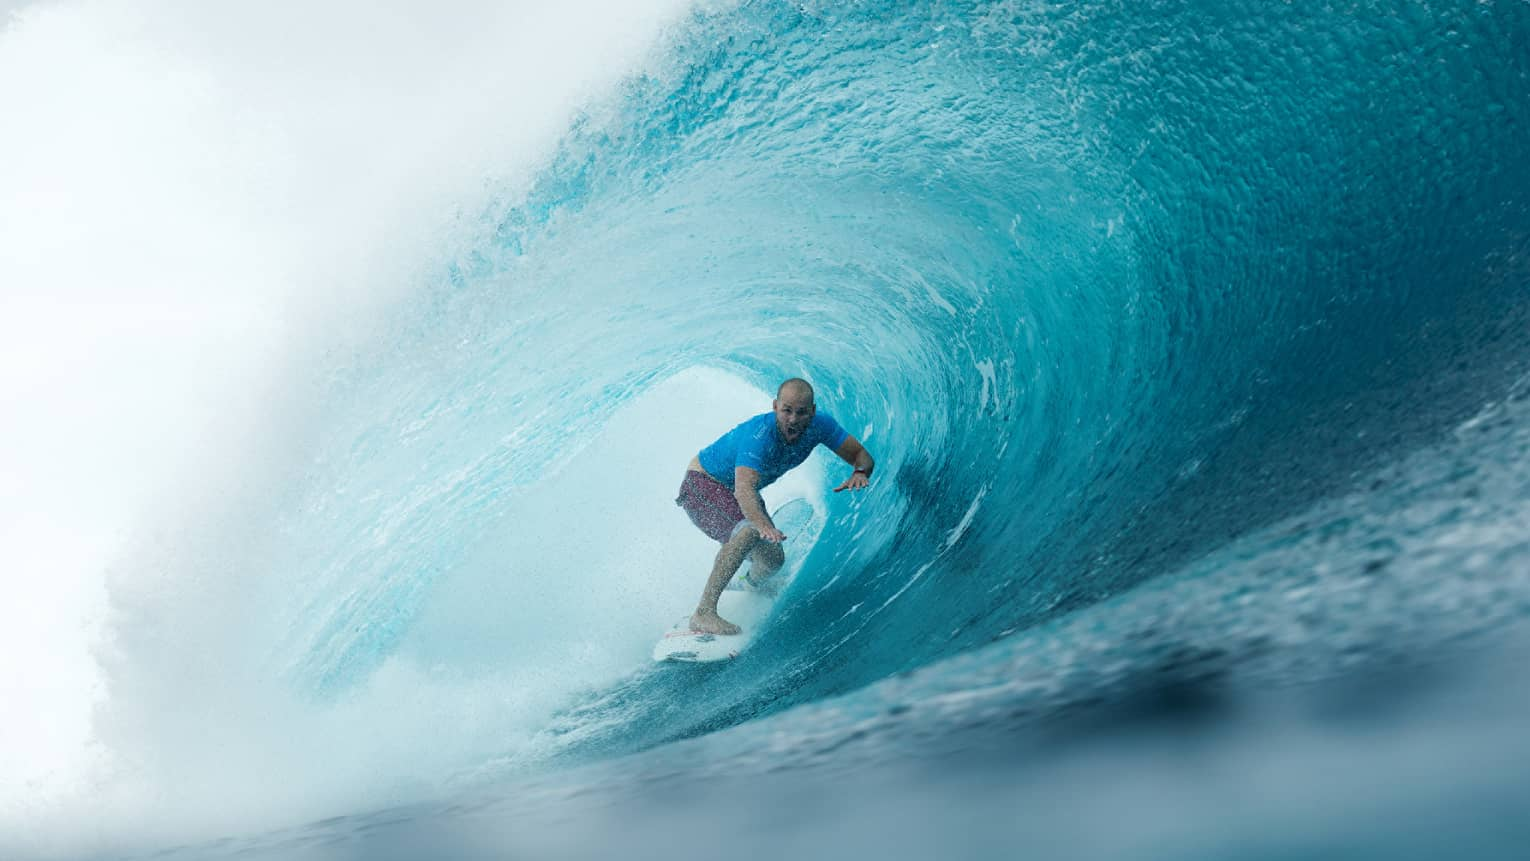 Man on surfboard surfs along large waves in remote Outer Atolls